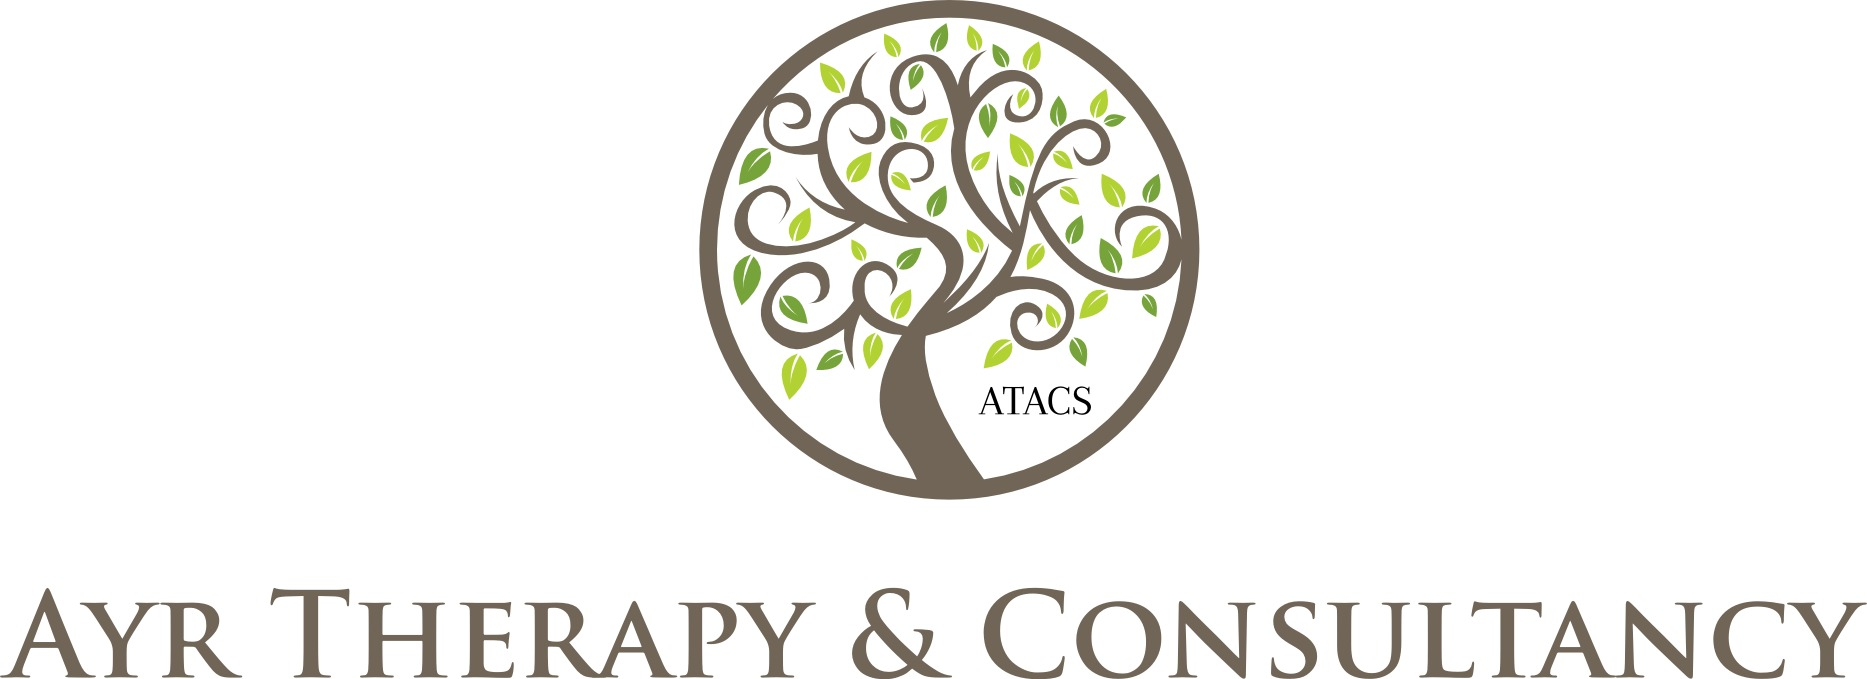 Ayr Therapy & Consultancy company logo